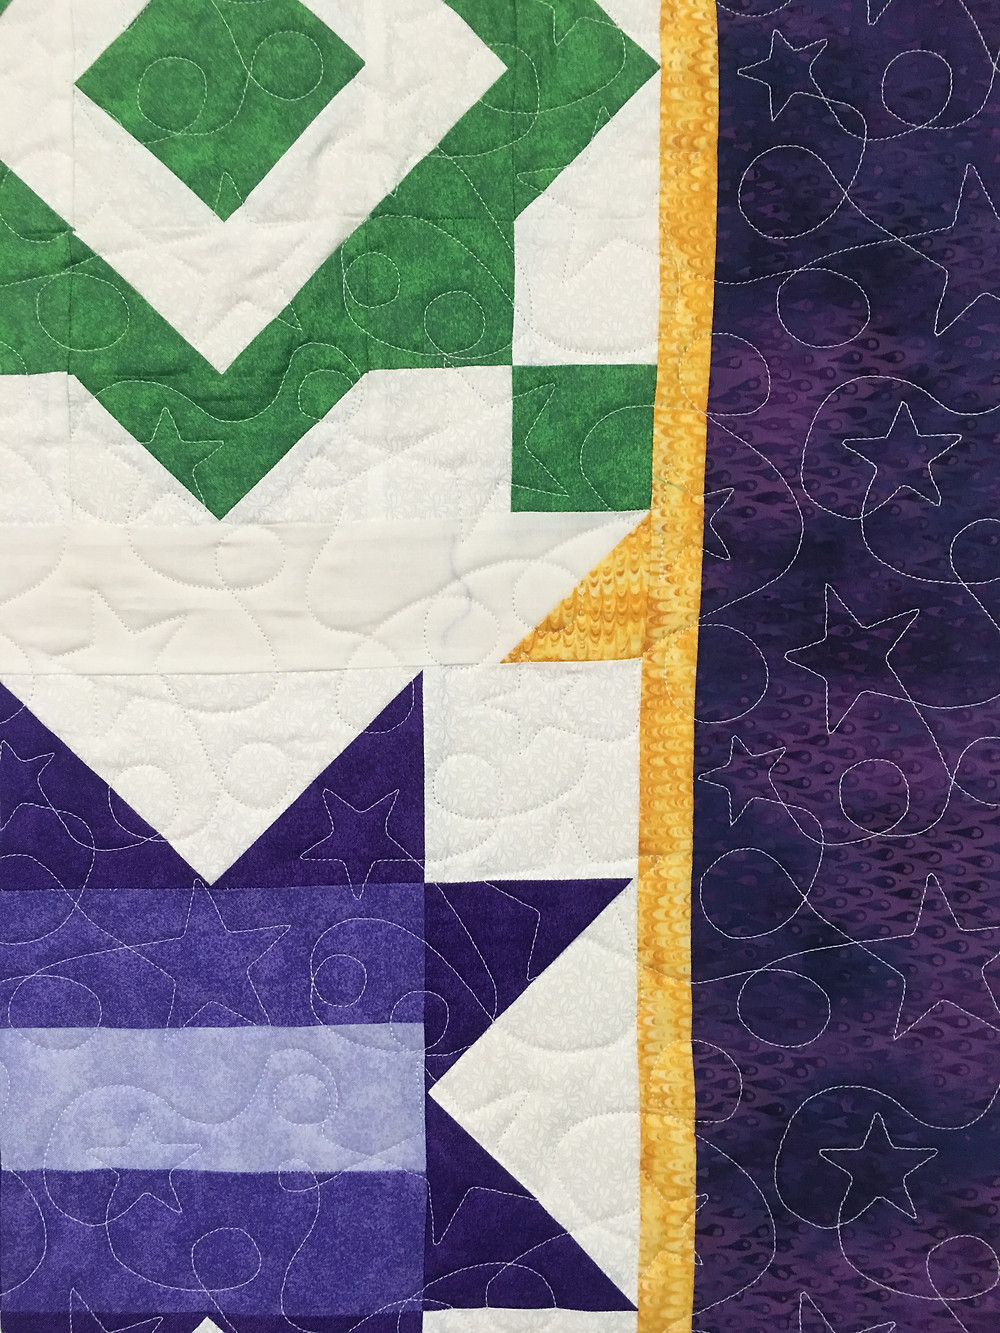 Another close up of Mary Starry Wonders Quilt